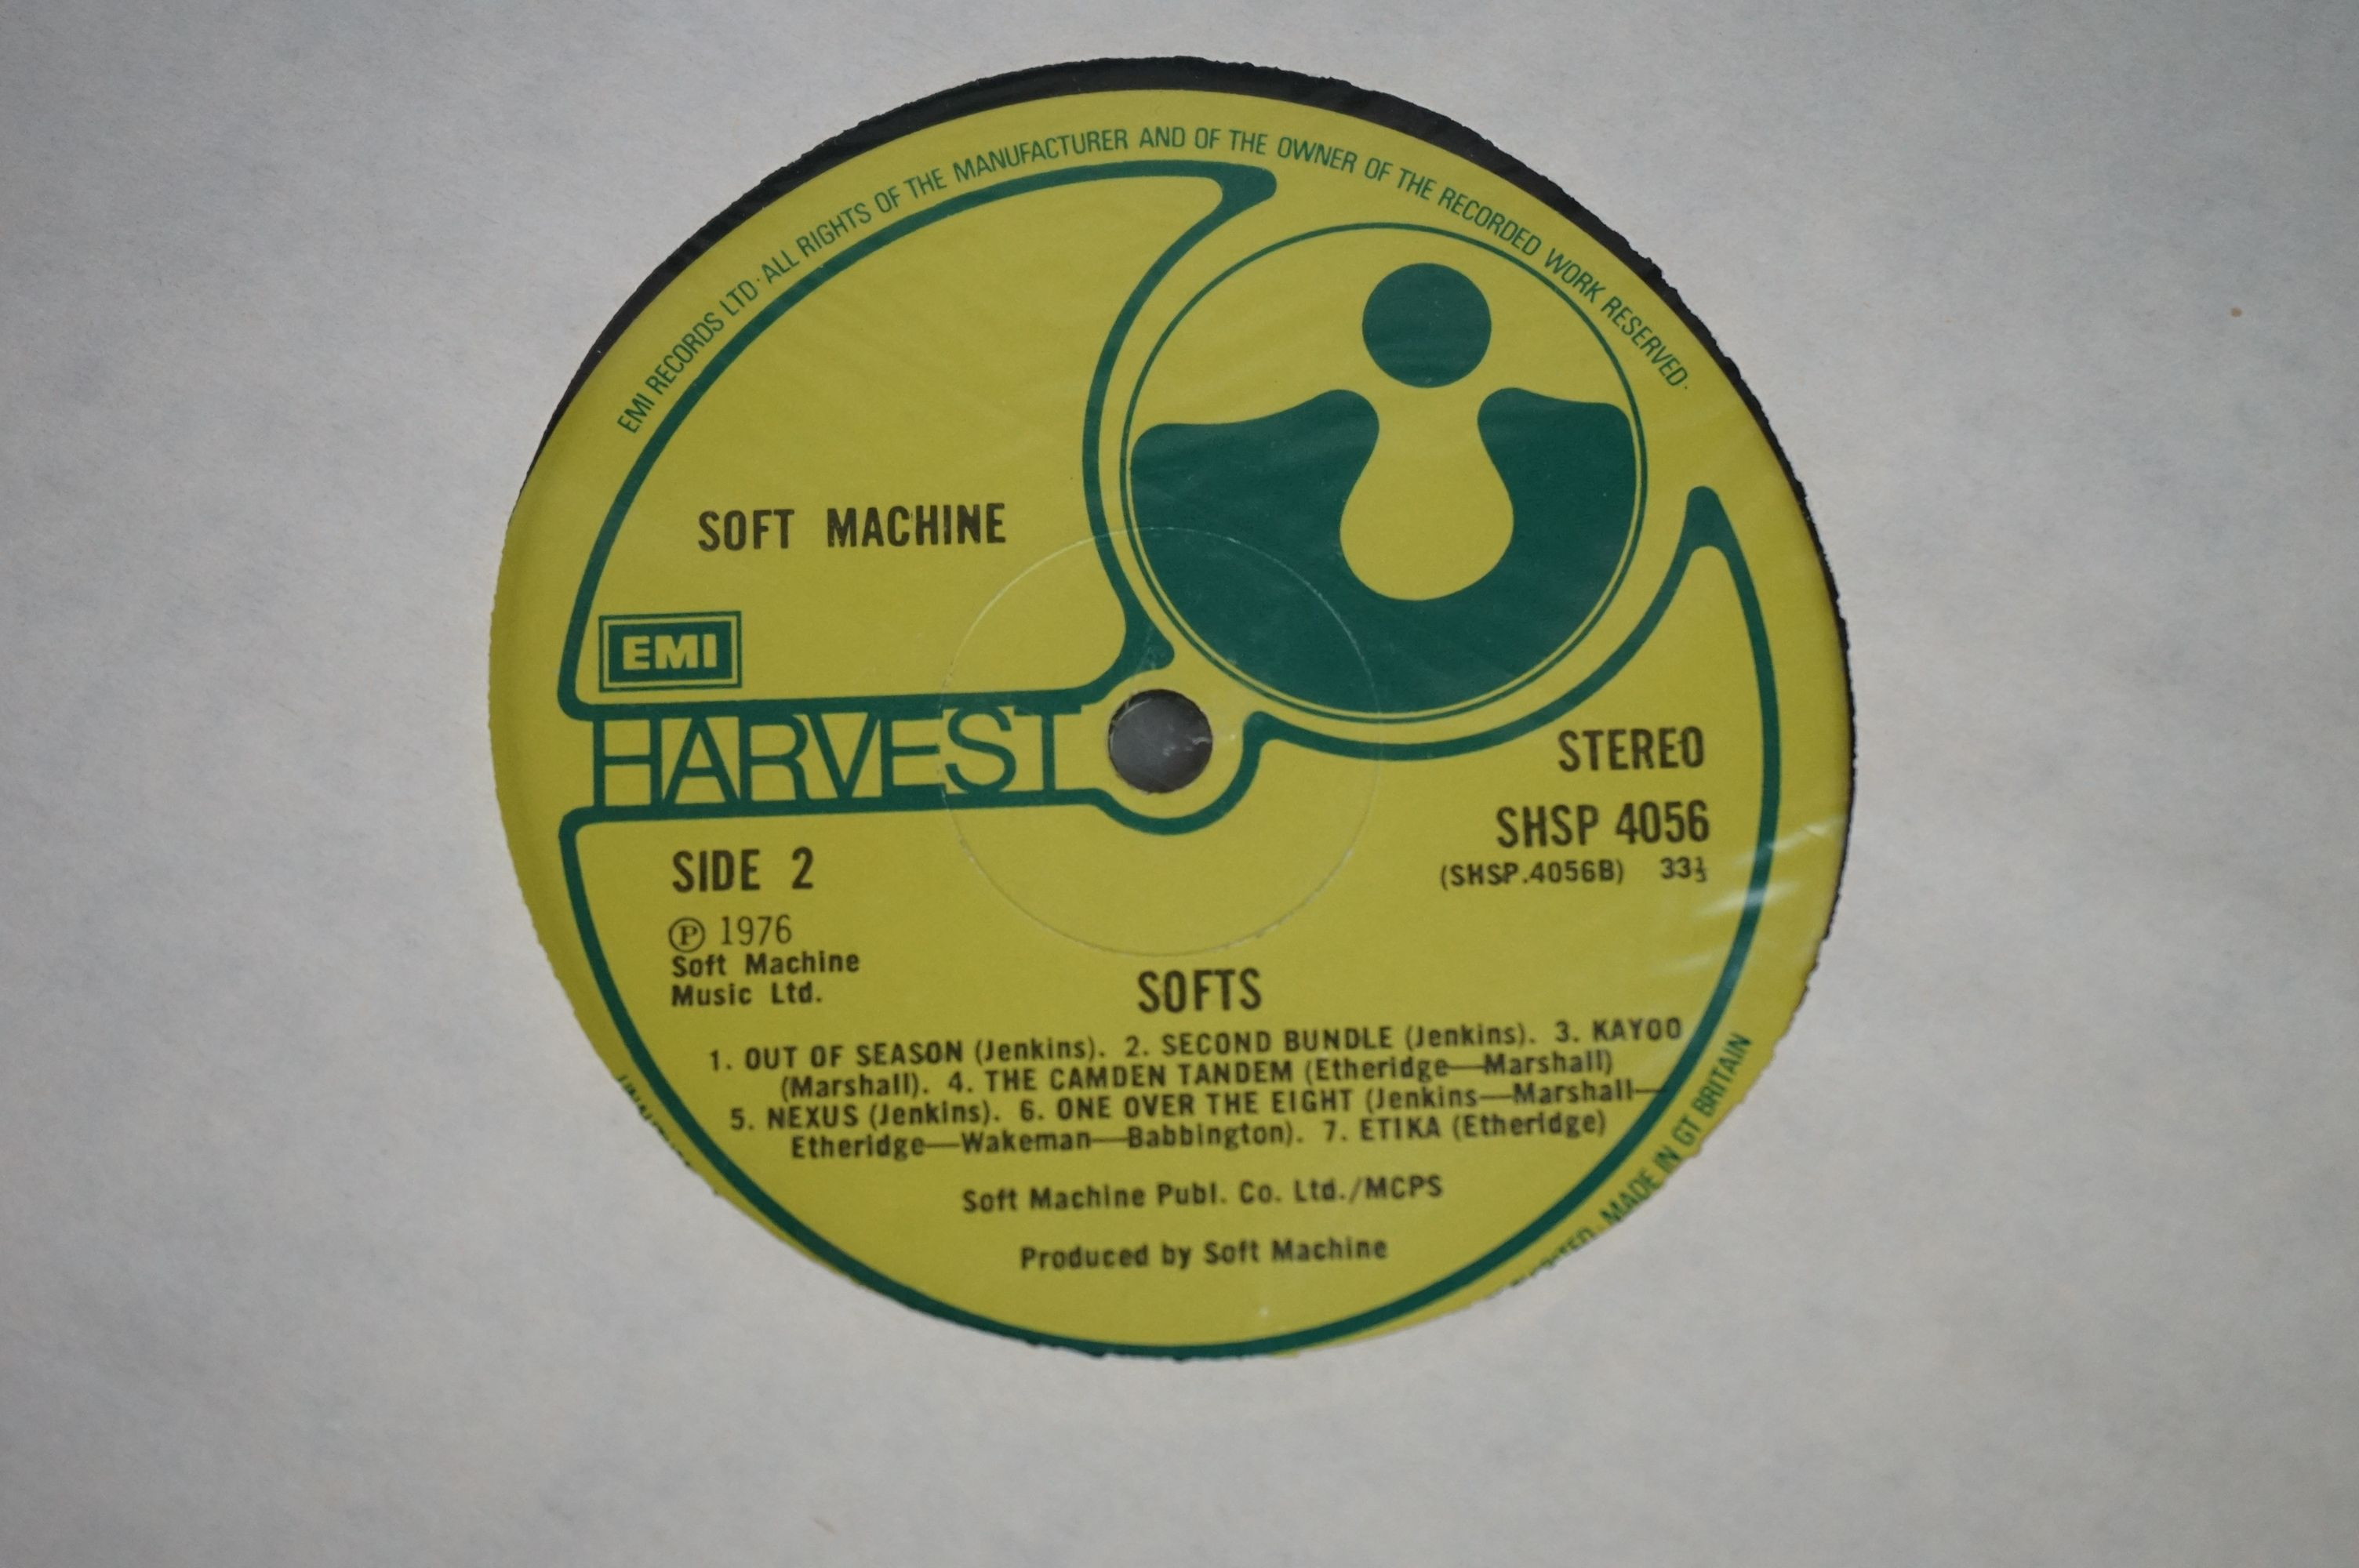 Vinyl - Two Soft Machine vinyl LP's to include Softs (EMI Records SHSP 4056), Volume Two (Probe - Image 8 of 9